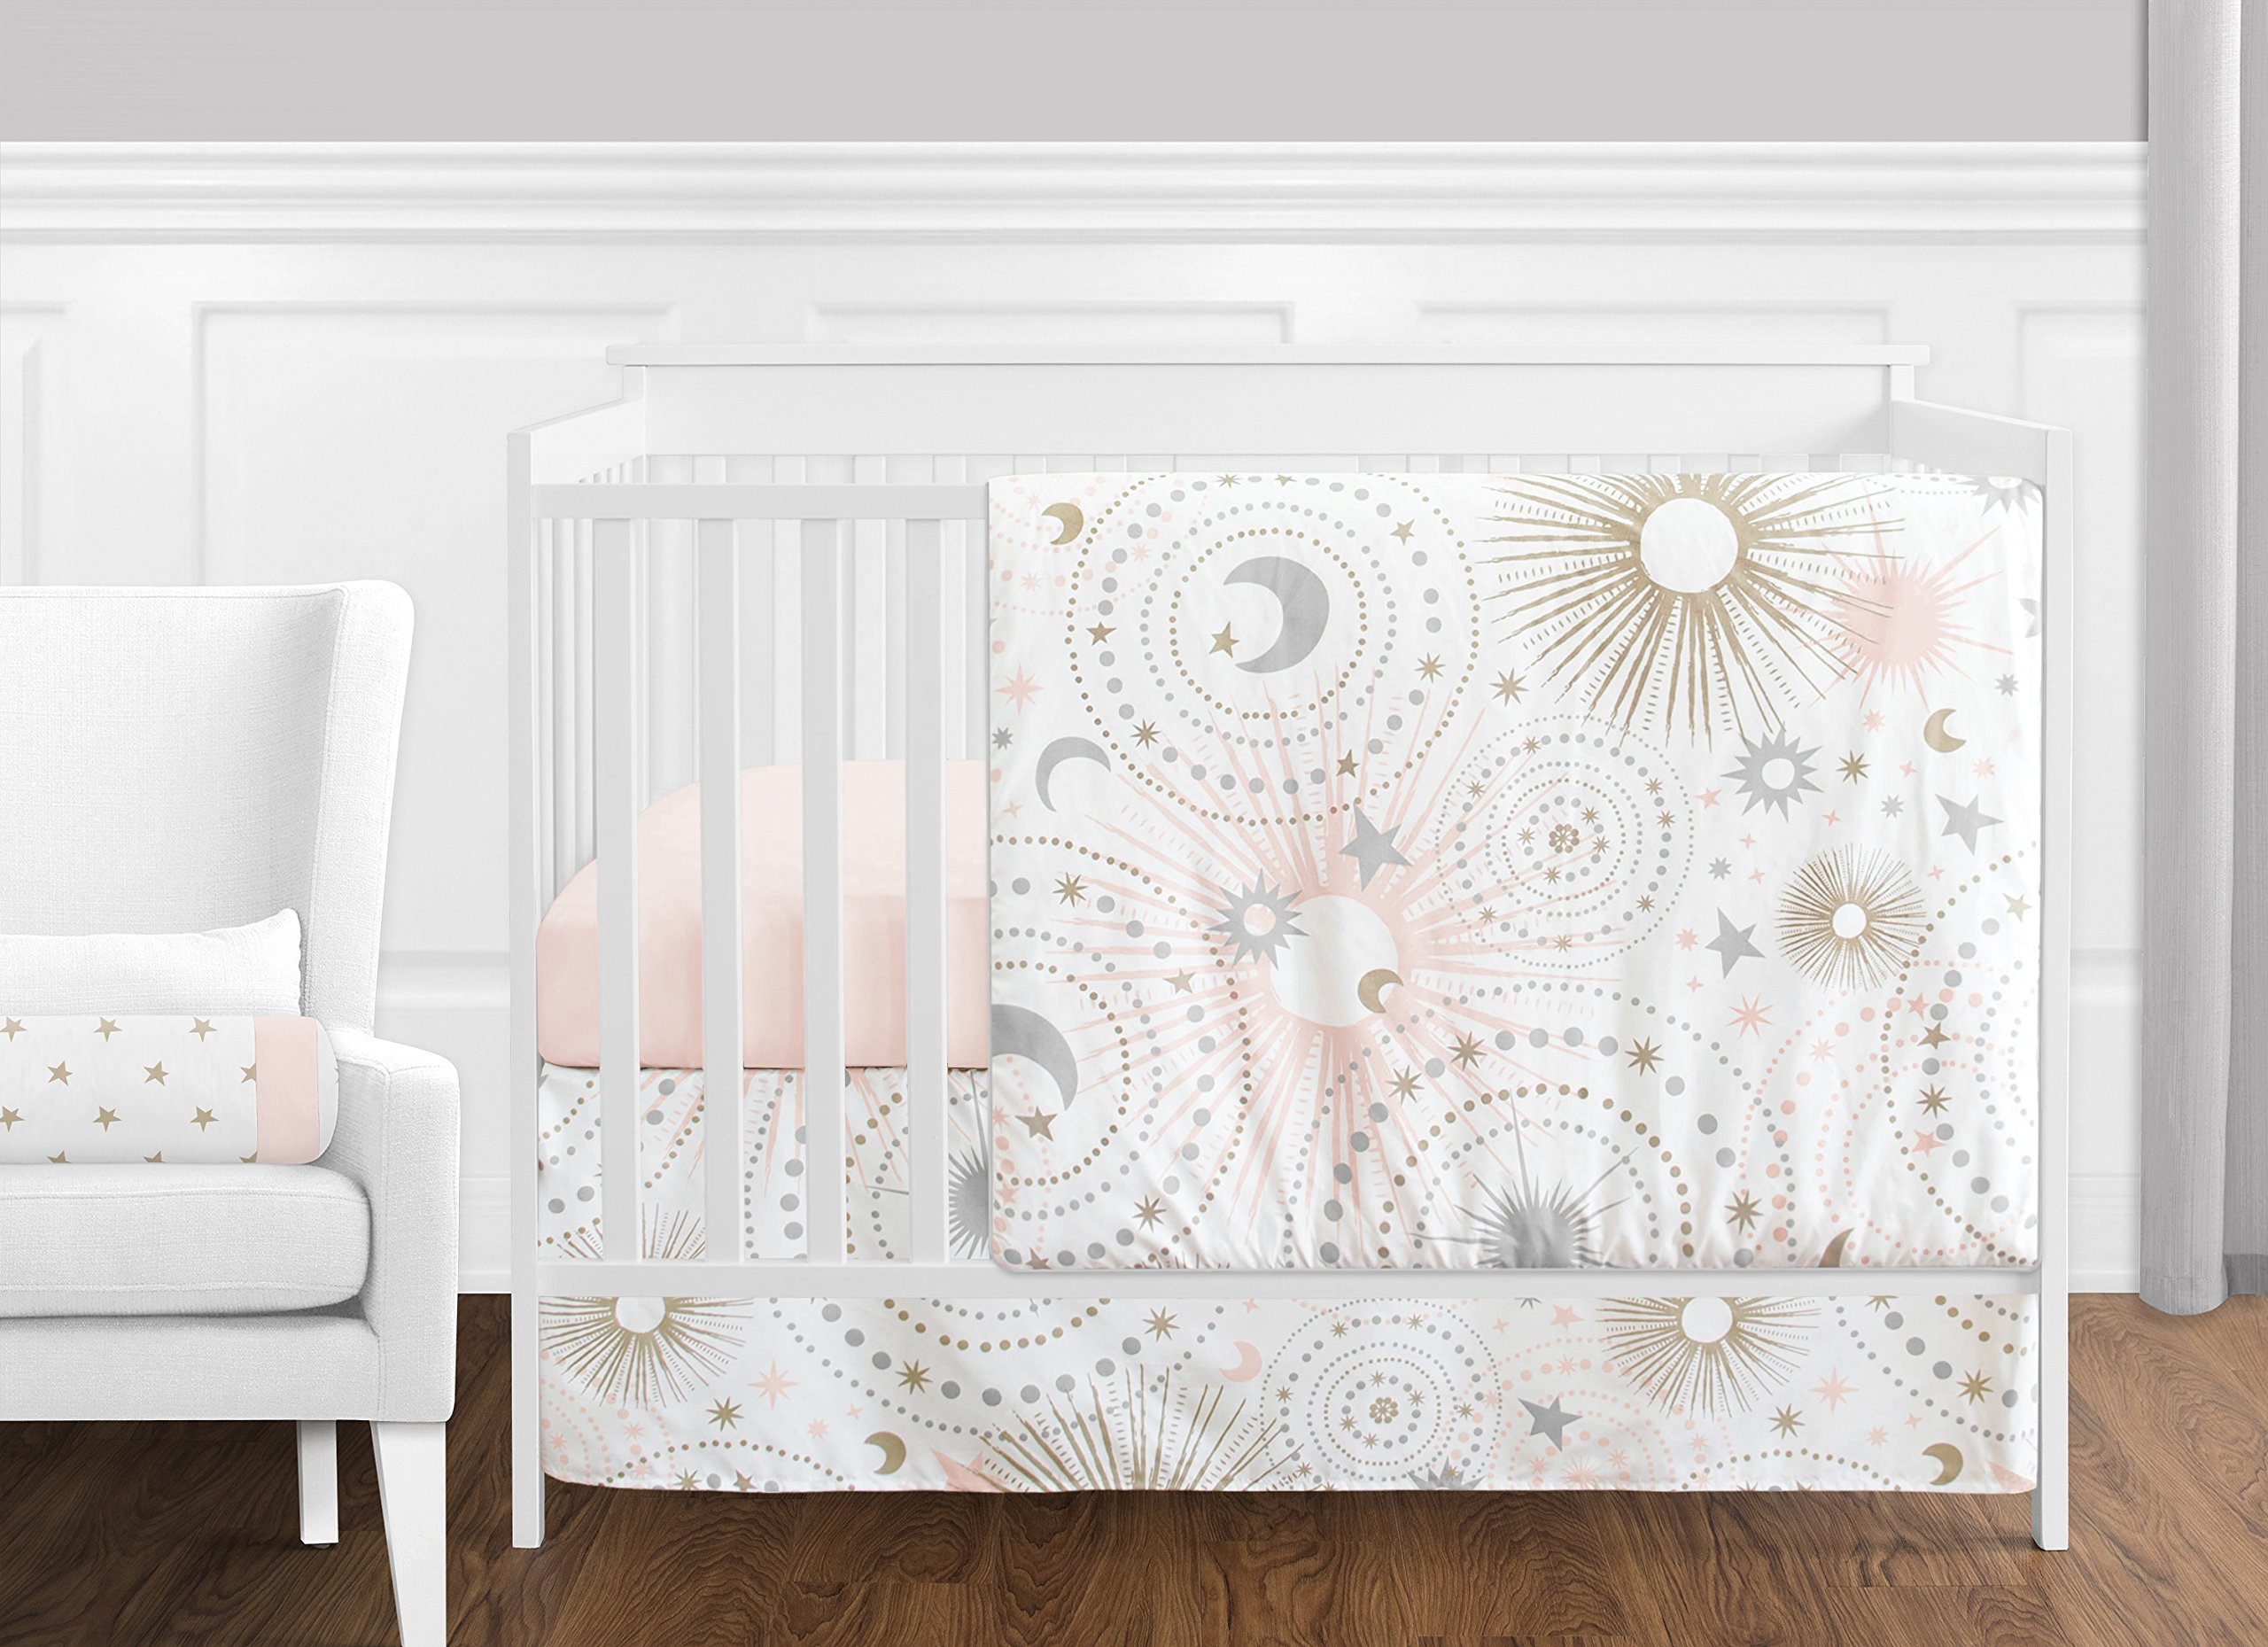 11 pc. Blush Pink, Gold, Grey and White Star and Moon Celestial Baby Girl Crib Bedding Set by Sweet Jojo Designs